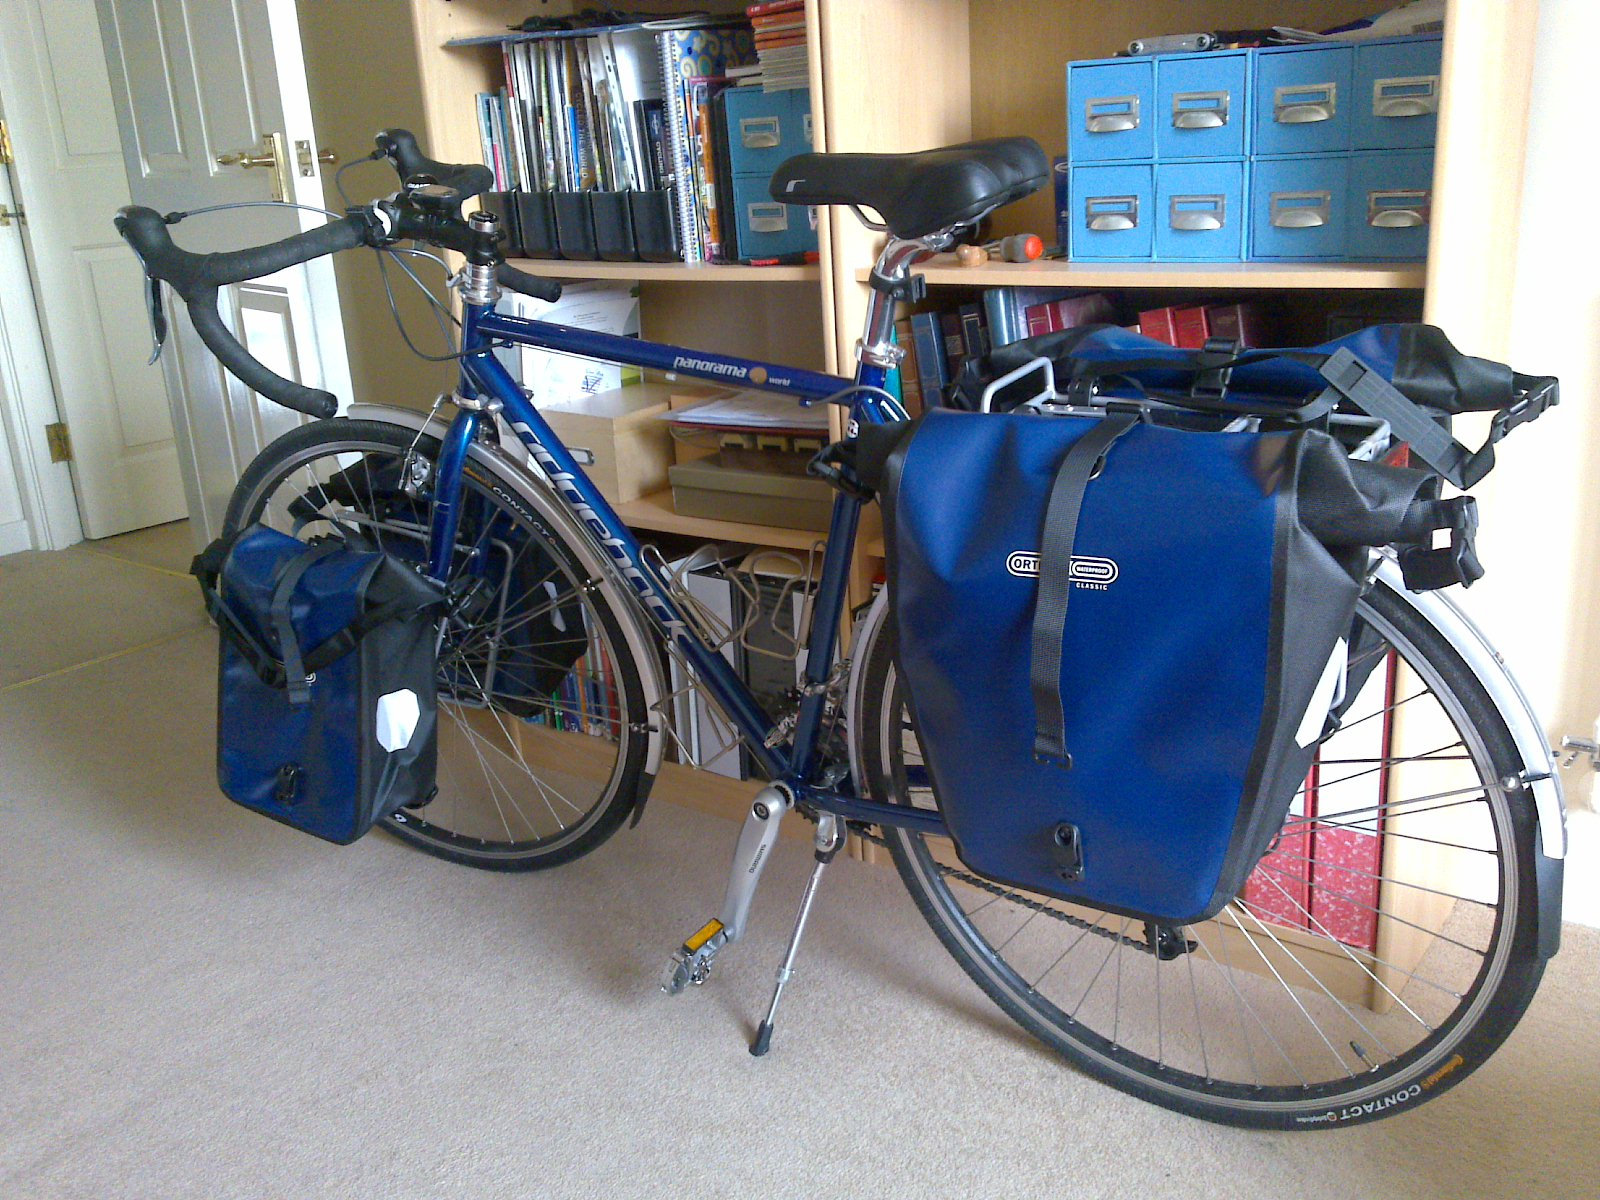 986470c37e8 The Ortlieb Roller Classic (Plus) Pannier With QL2.1 – CyclingEurope.org